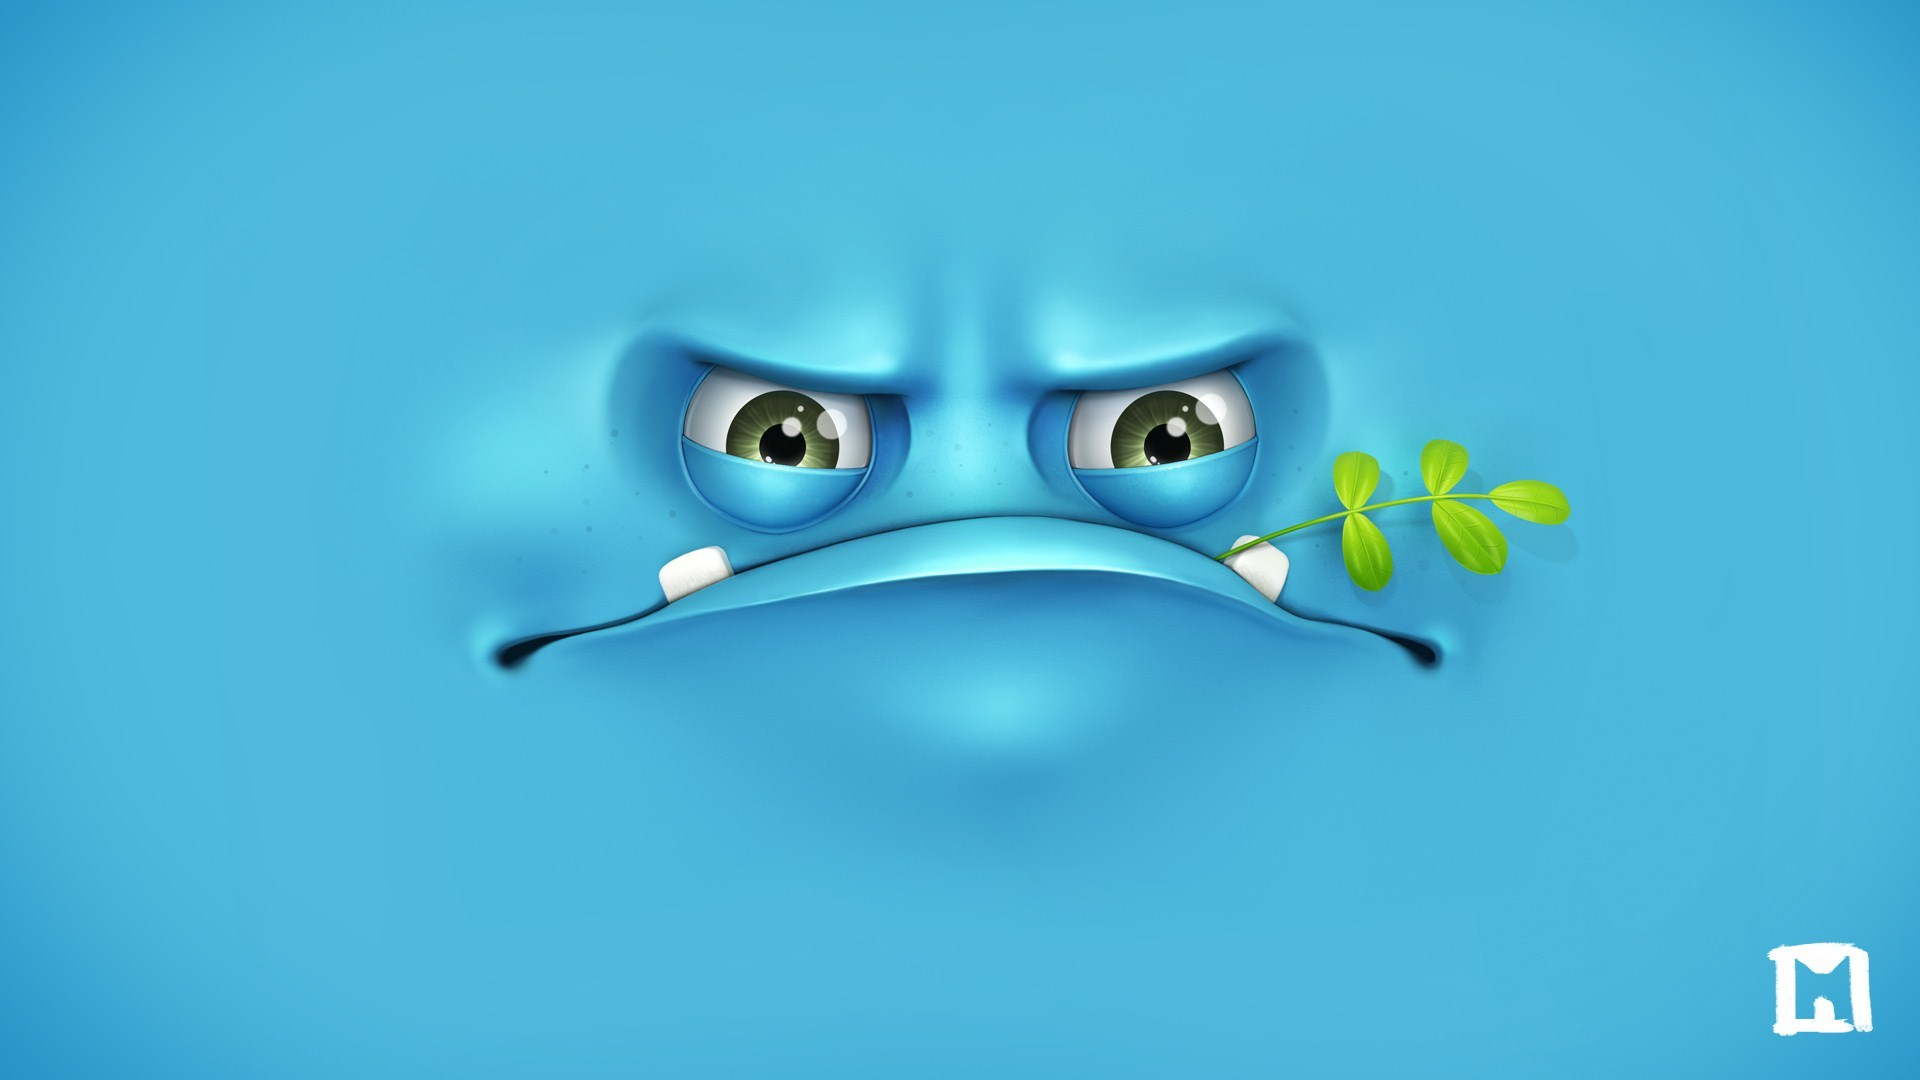 Very Funny Wallpapers HD